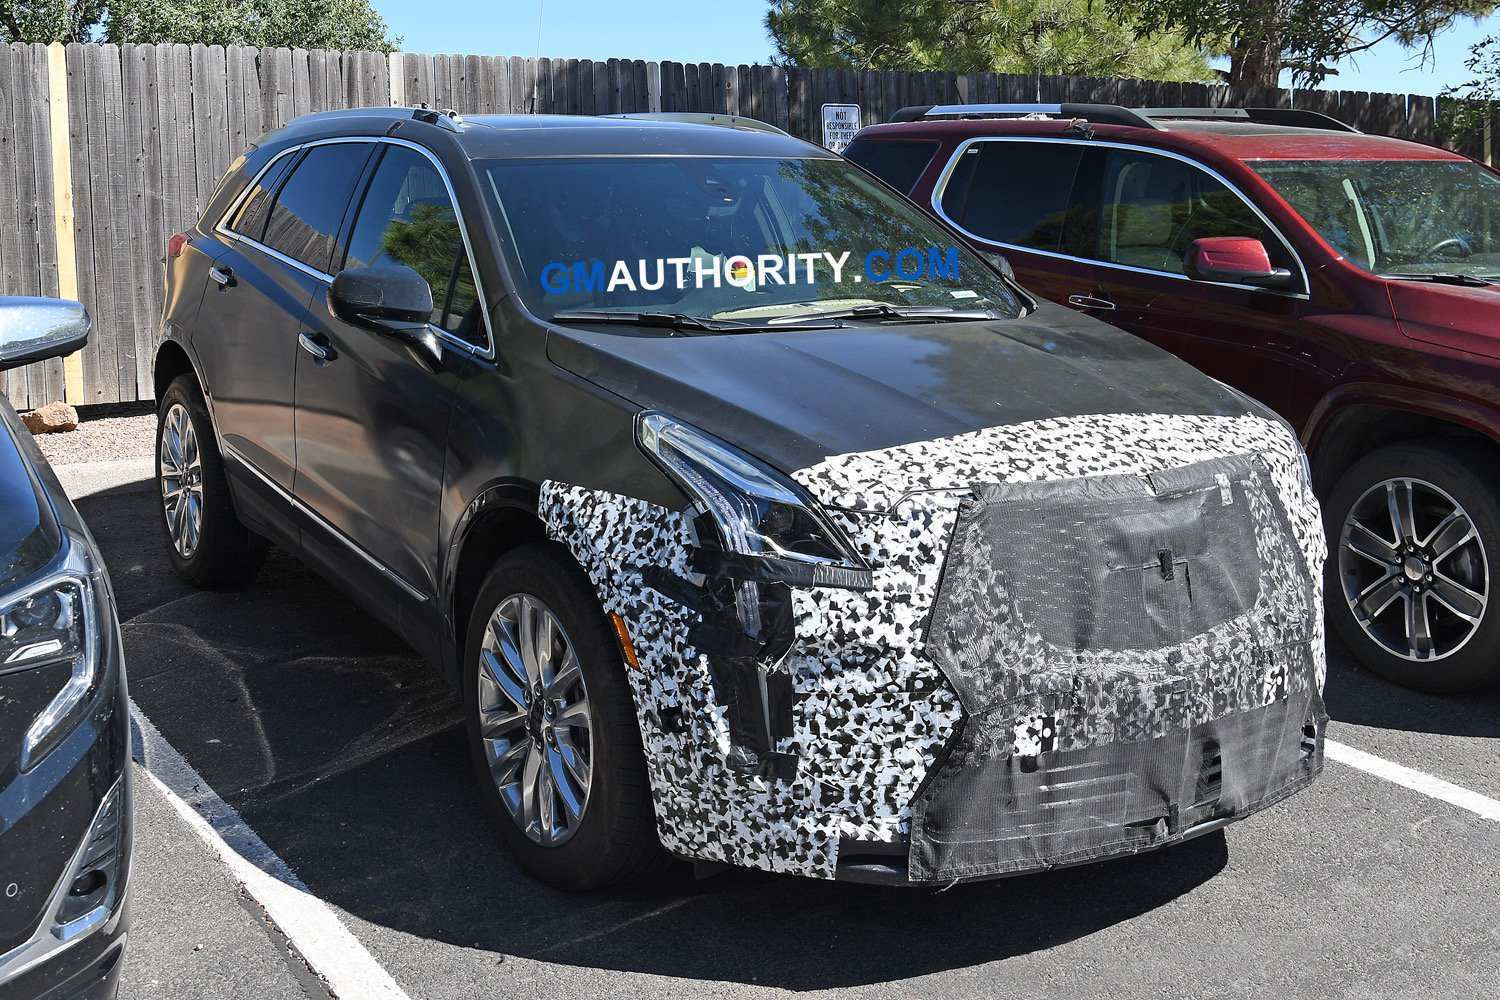 62 New Spy Shots Cadillac Xt5 Price